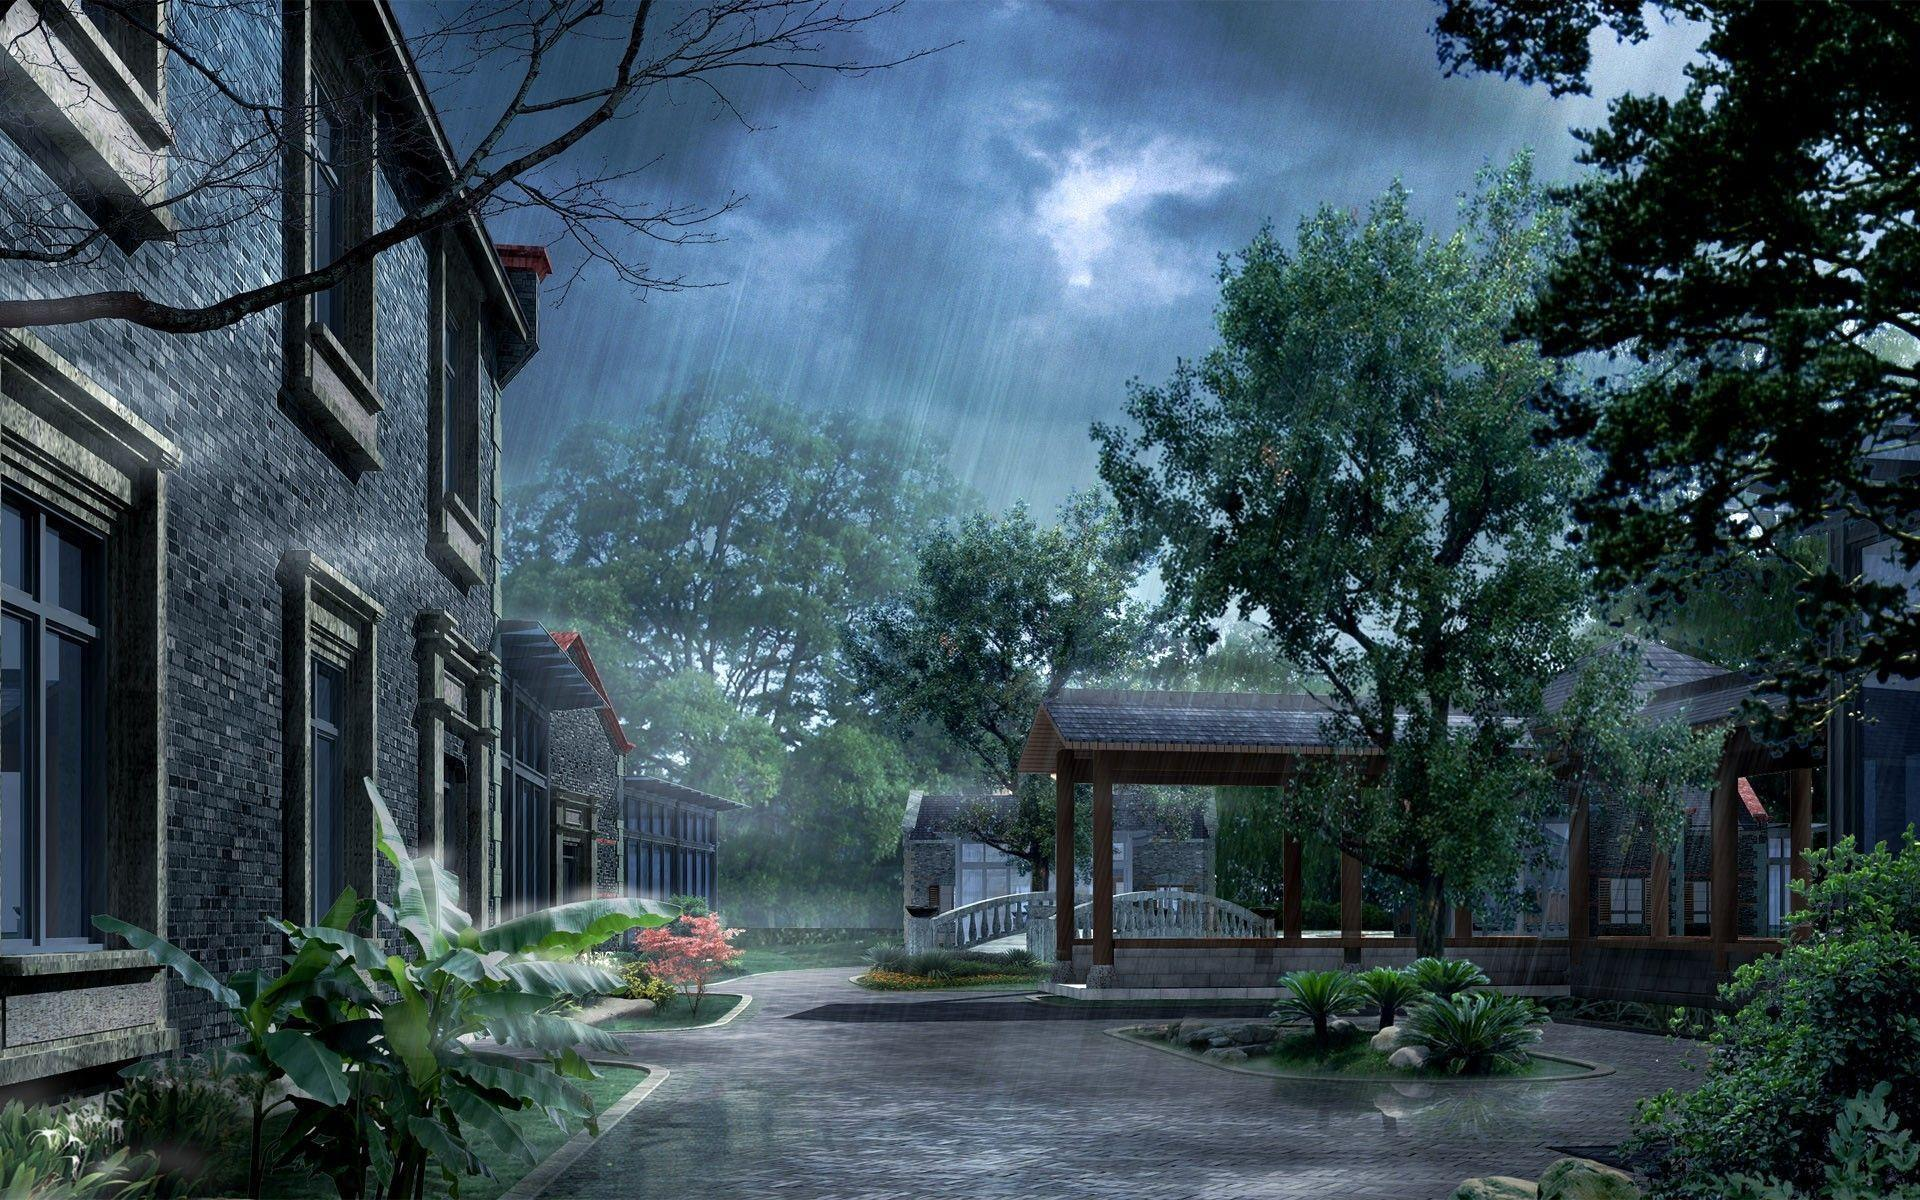 Rainy Day Wallpapers - Full HD wallpaper search